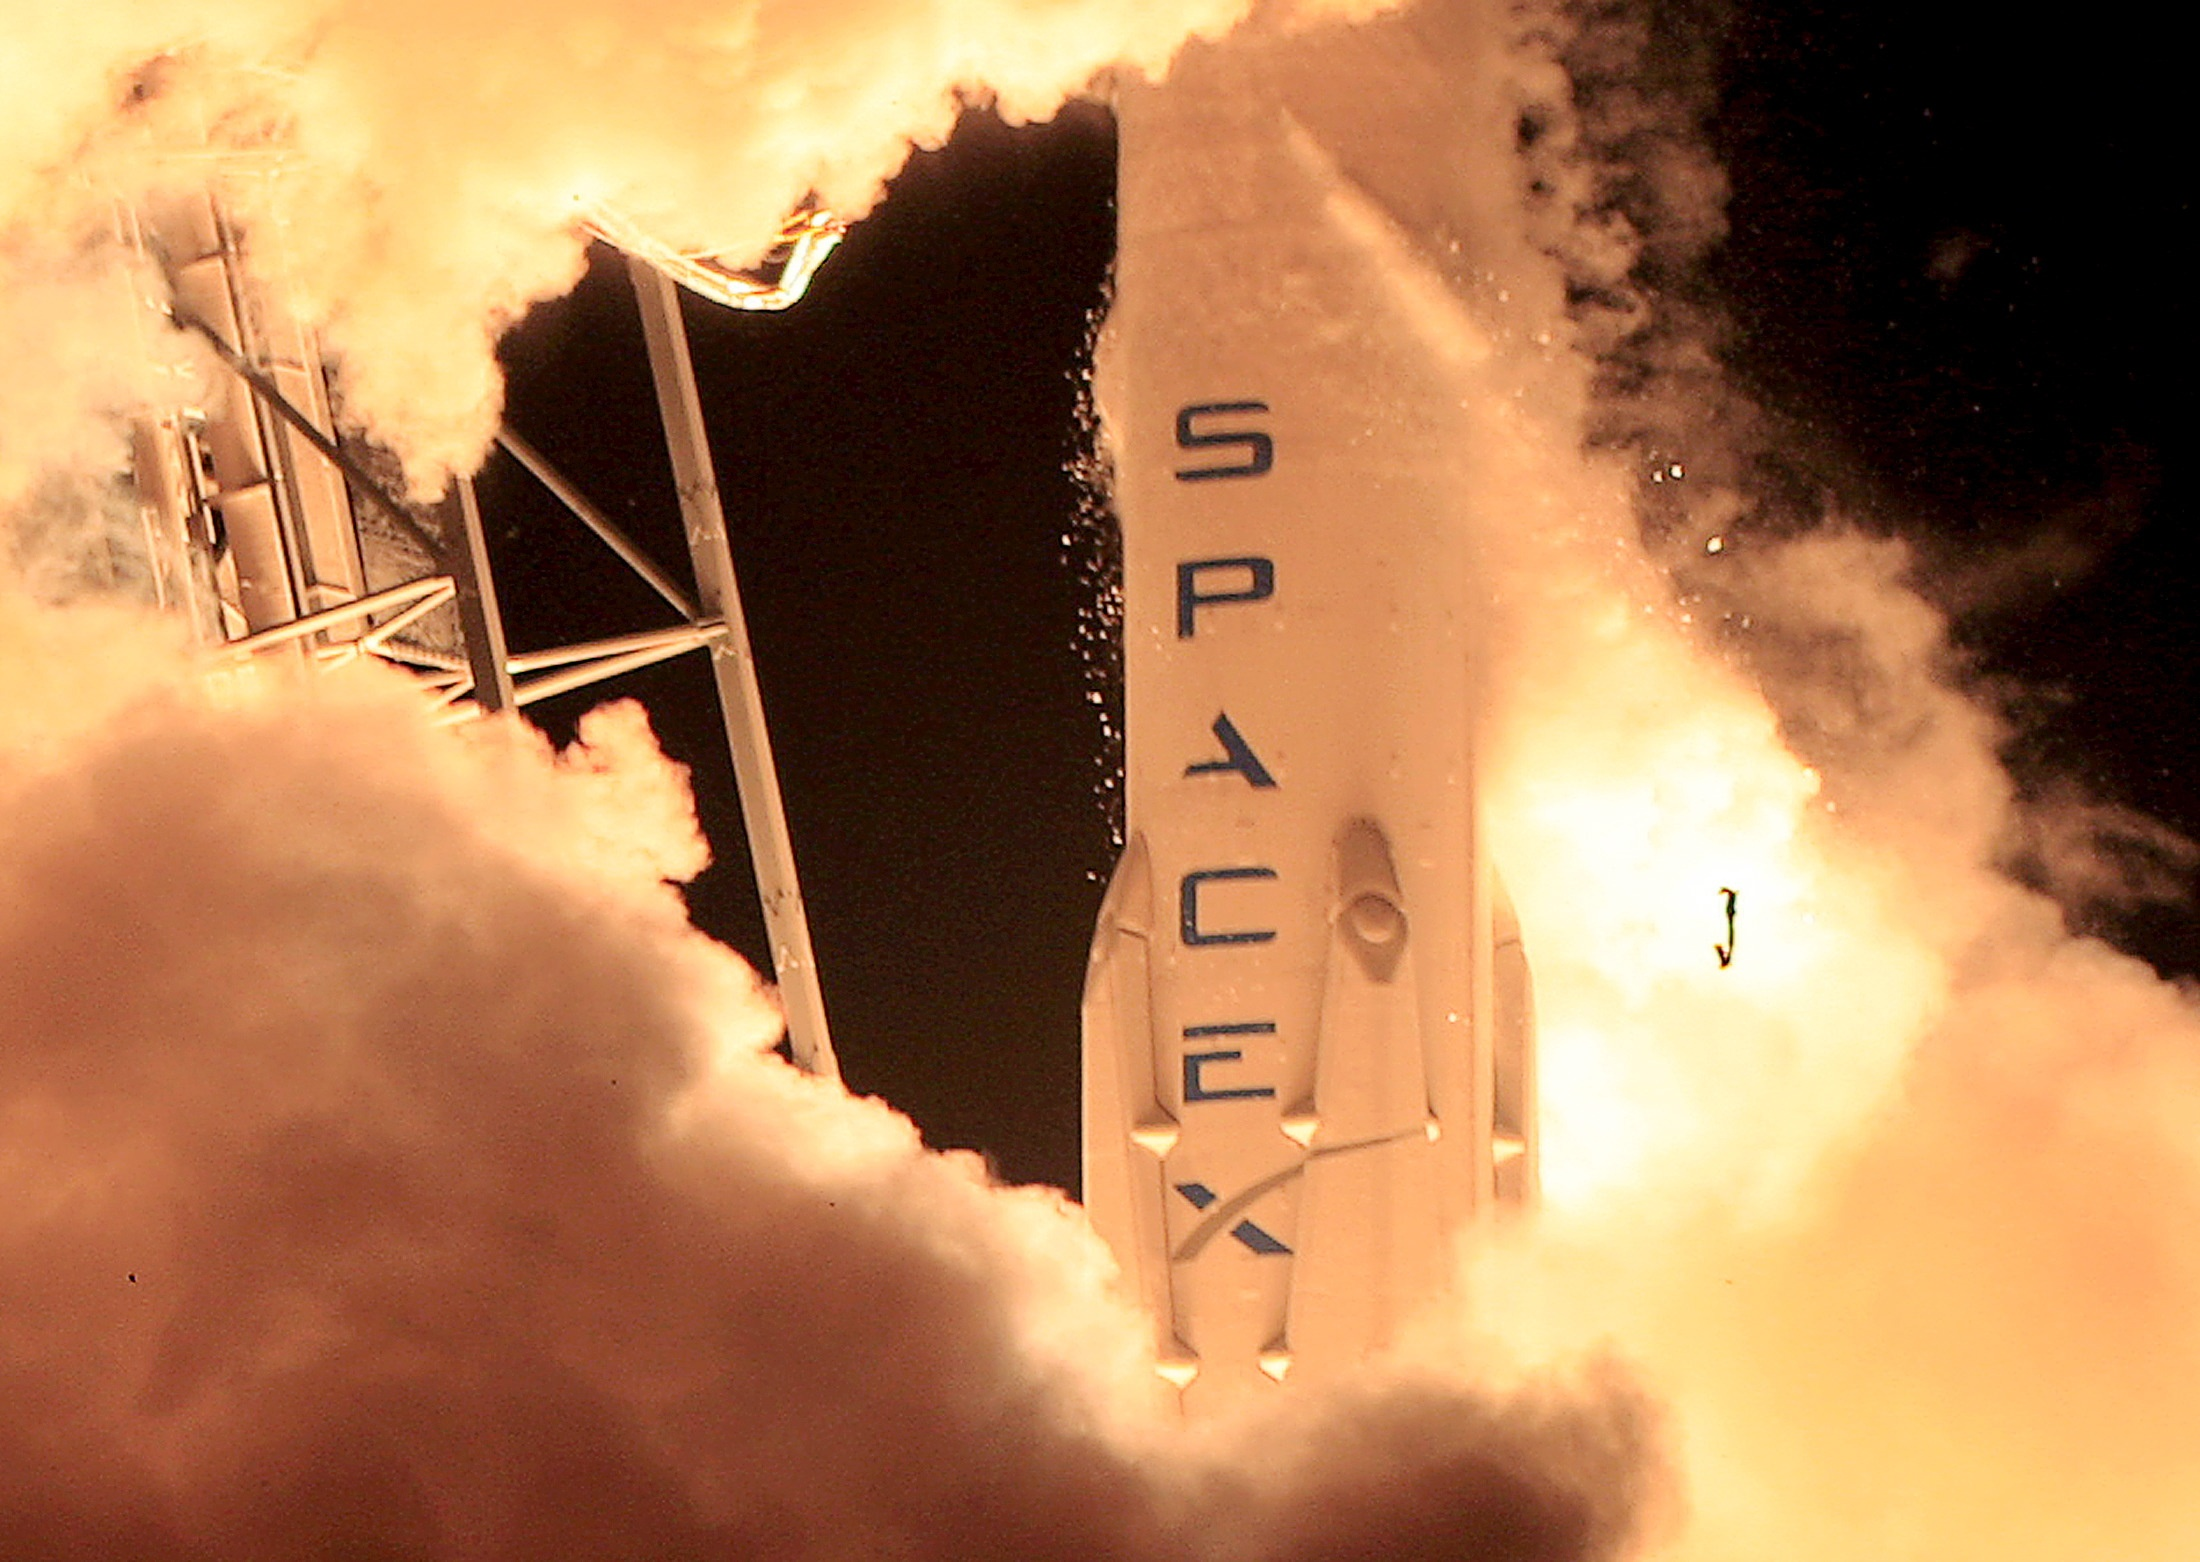 File: SpaceX makes most of its money from multibillion-dollar contracts with NASA and satellite launches.